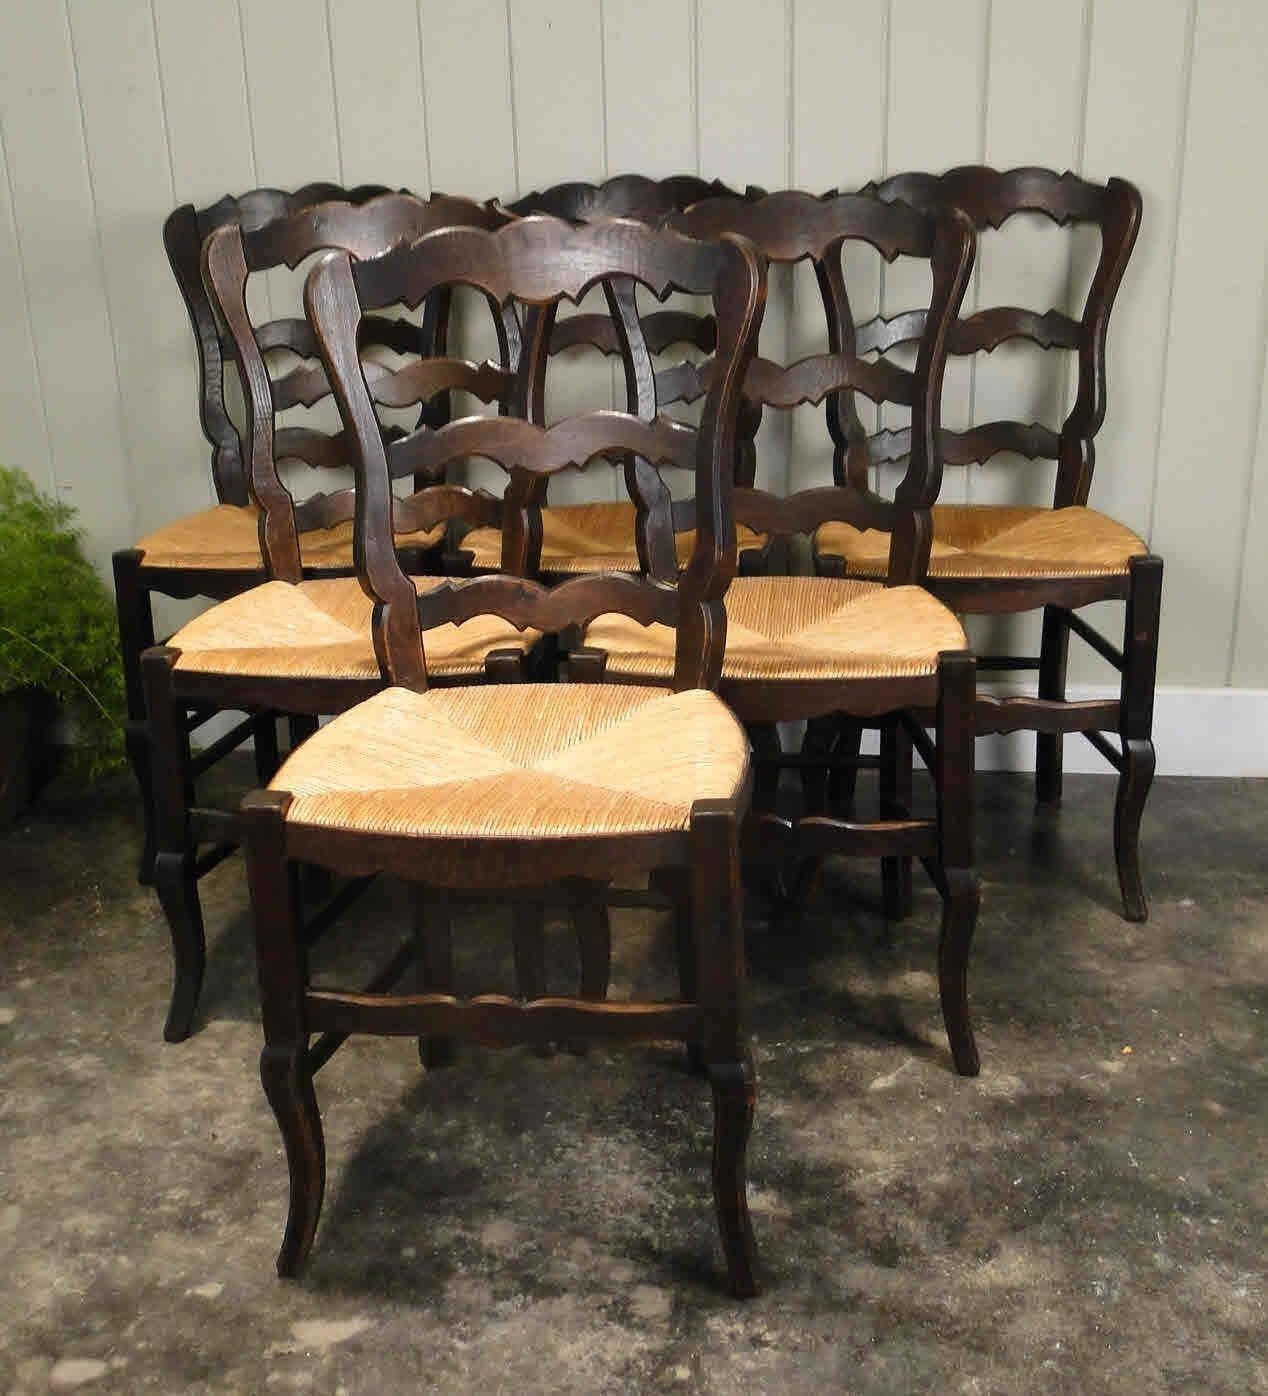 French Antique Tall Ladder Back Dining Chairs with Rush Seats, Shell Carvings and Strong Stretchers